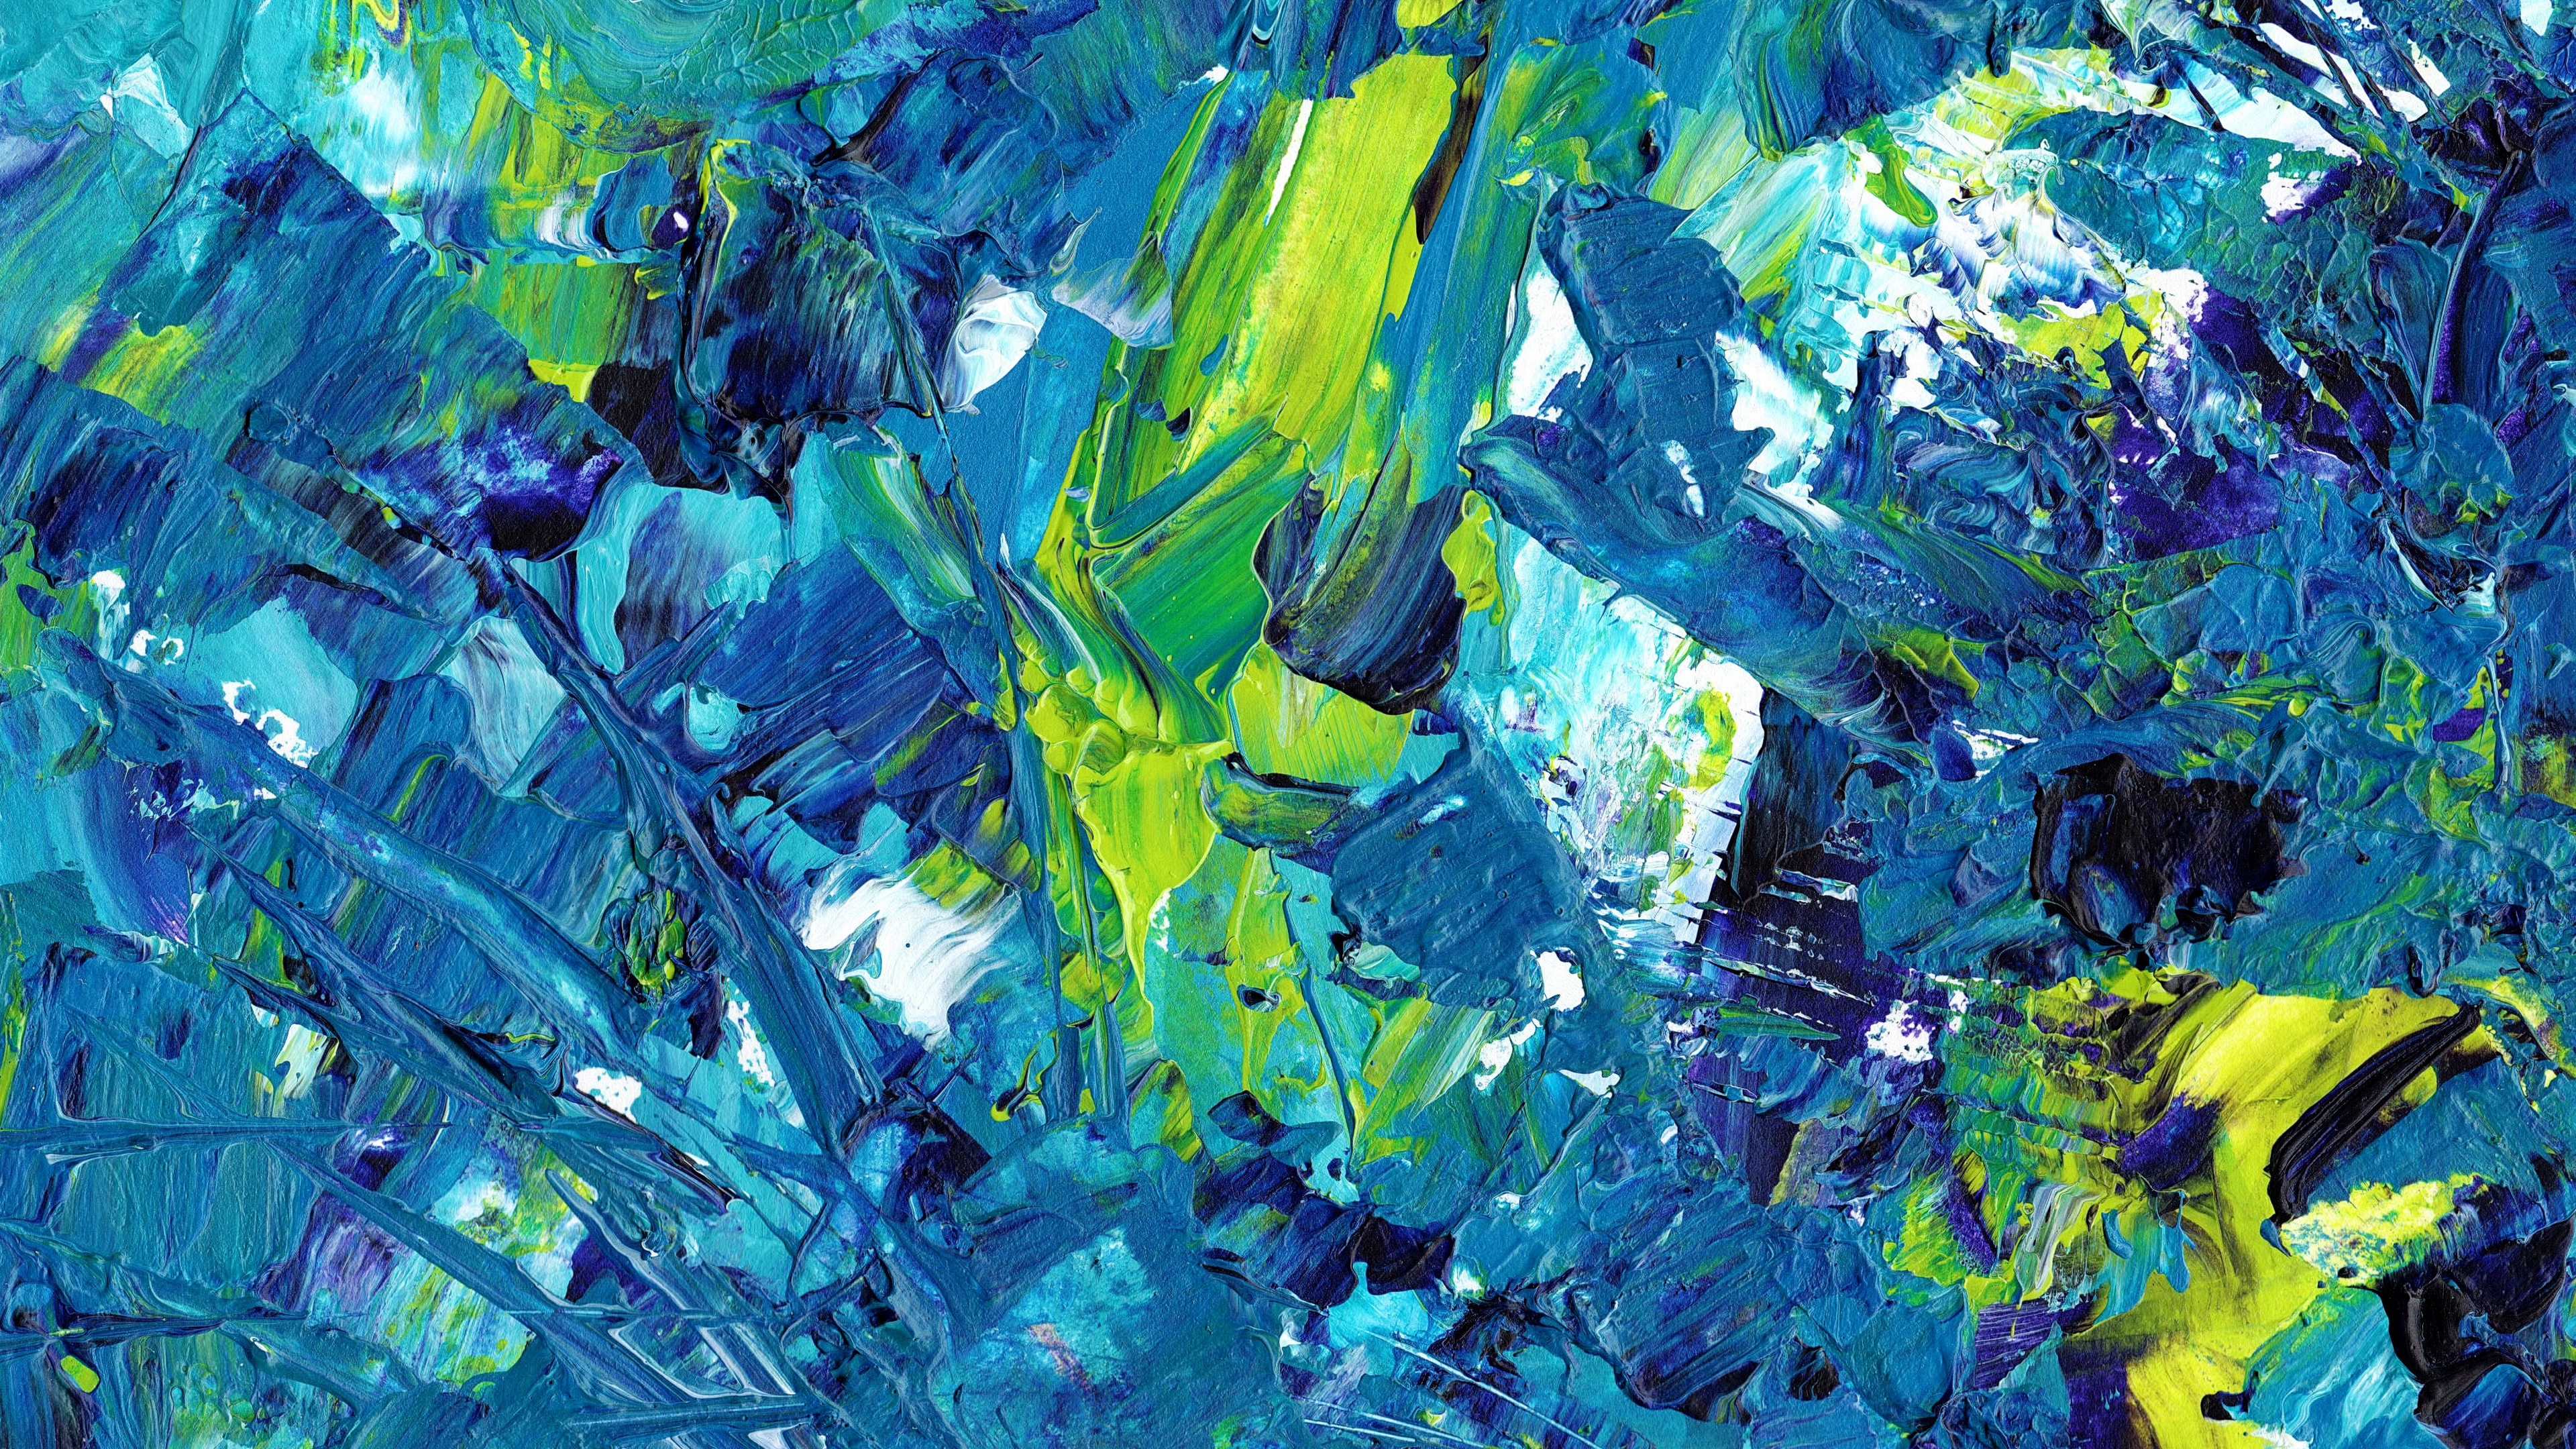 Wallpaper Acrylic, Paint, Primer, Stains - Paint Wallpapers 4k - HD Wallpaper